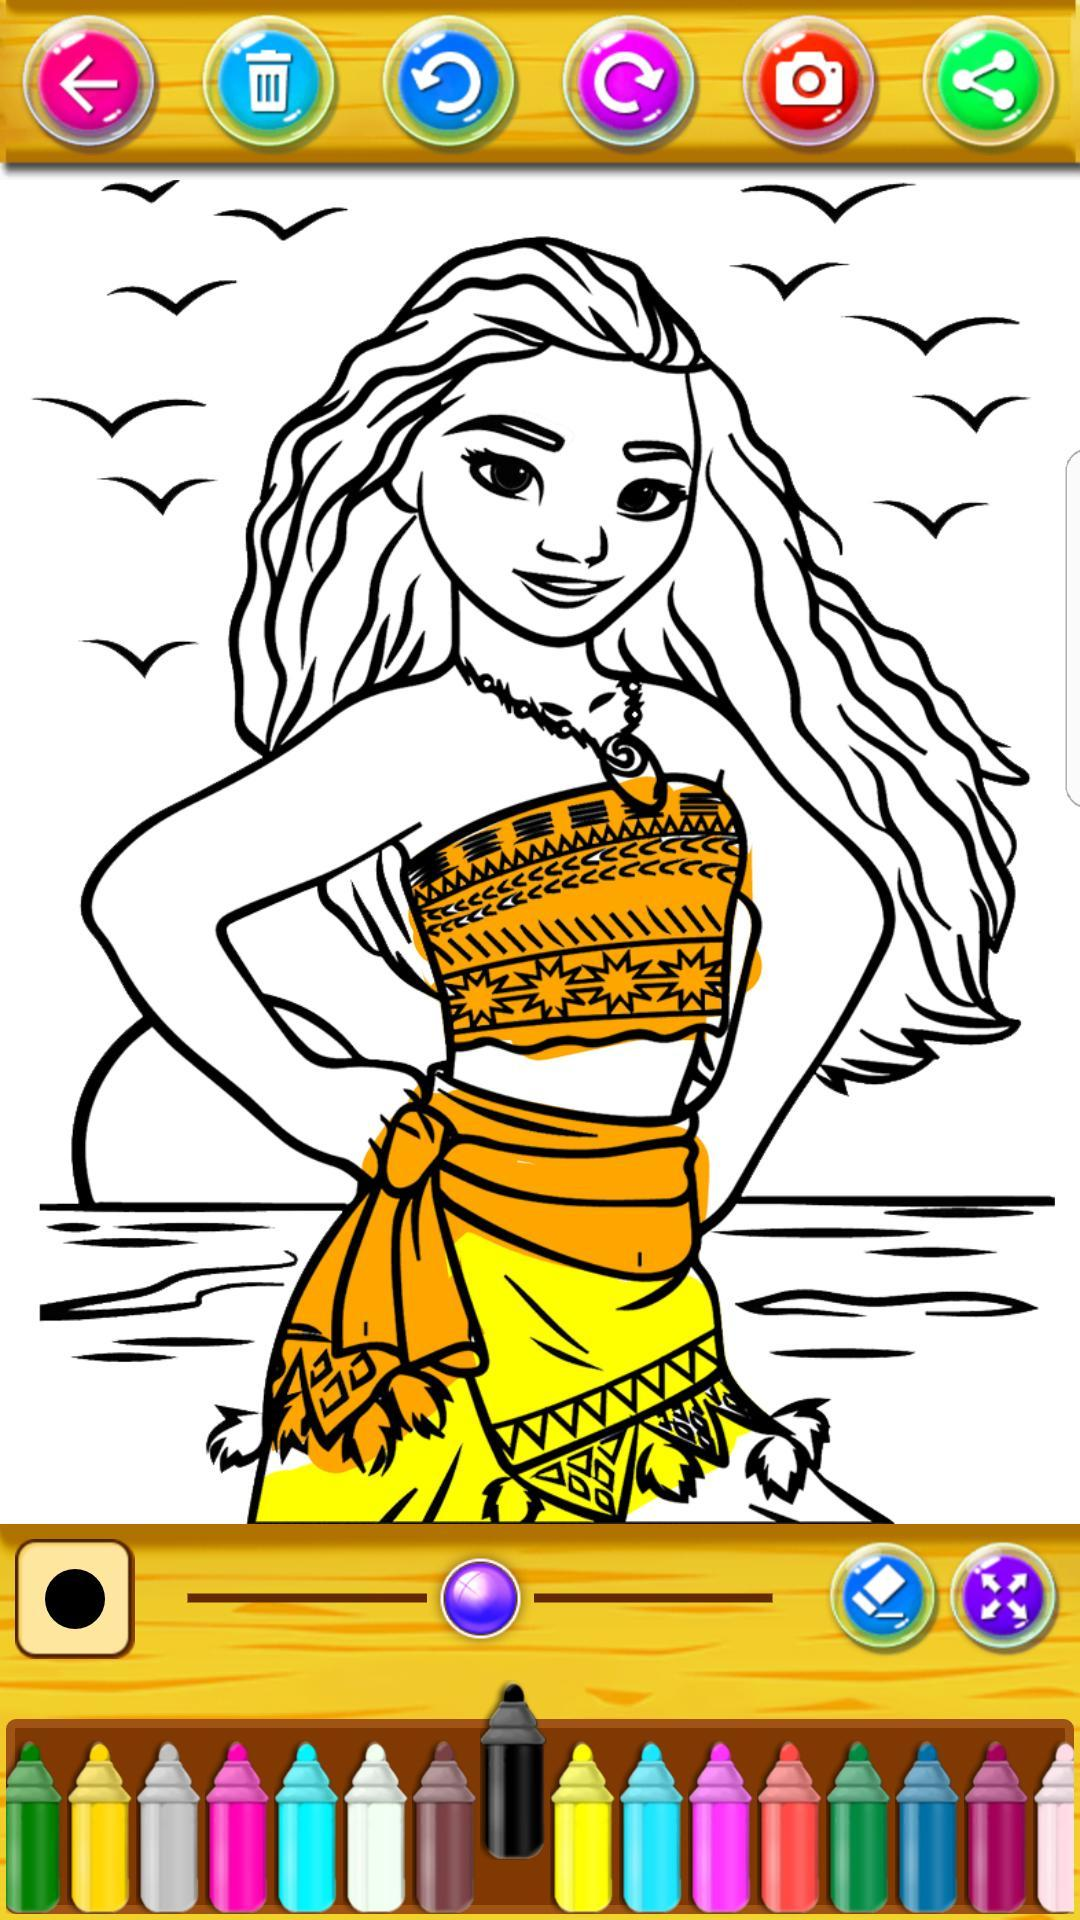 Princesa Vaian Moana Para Colorear Libro For Android Apk Download